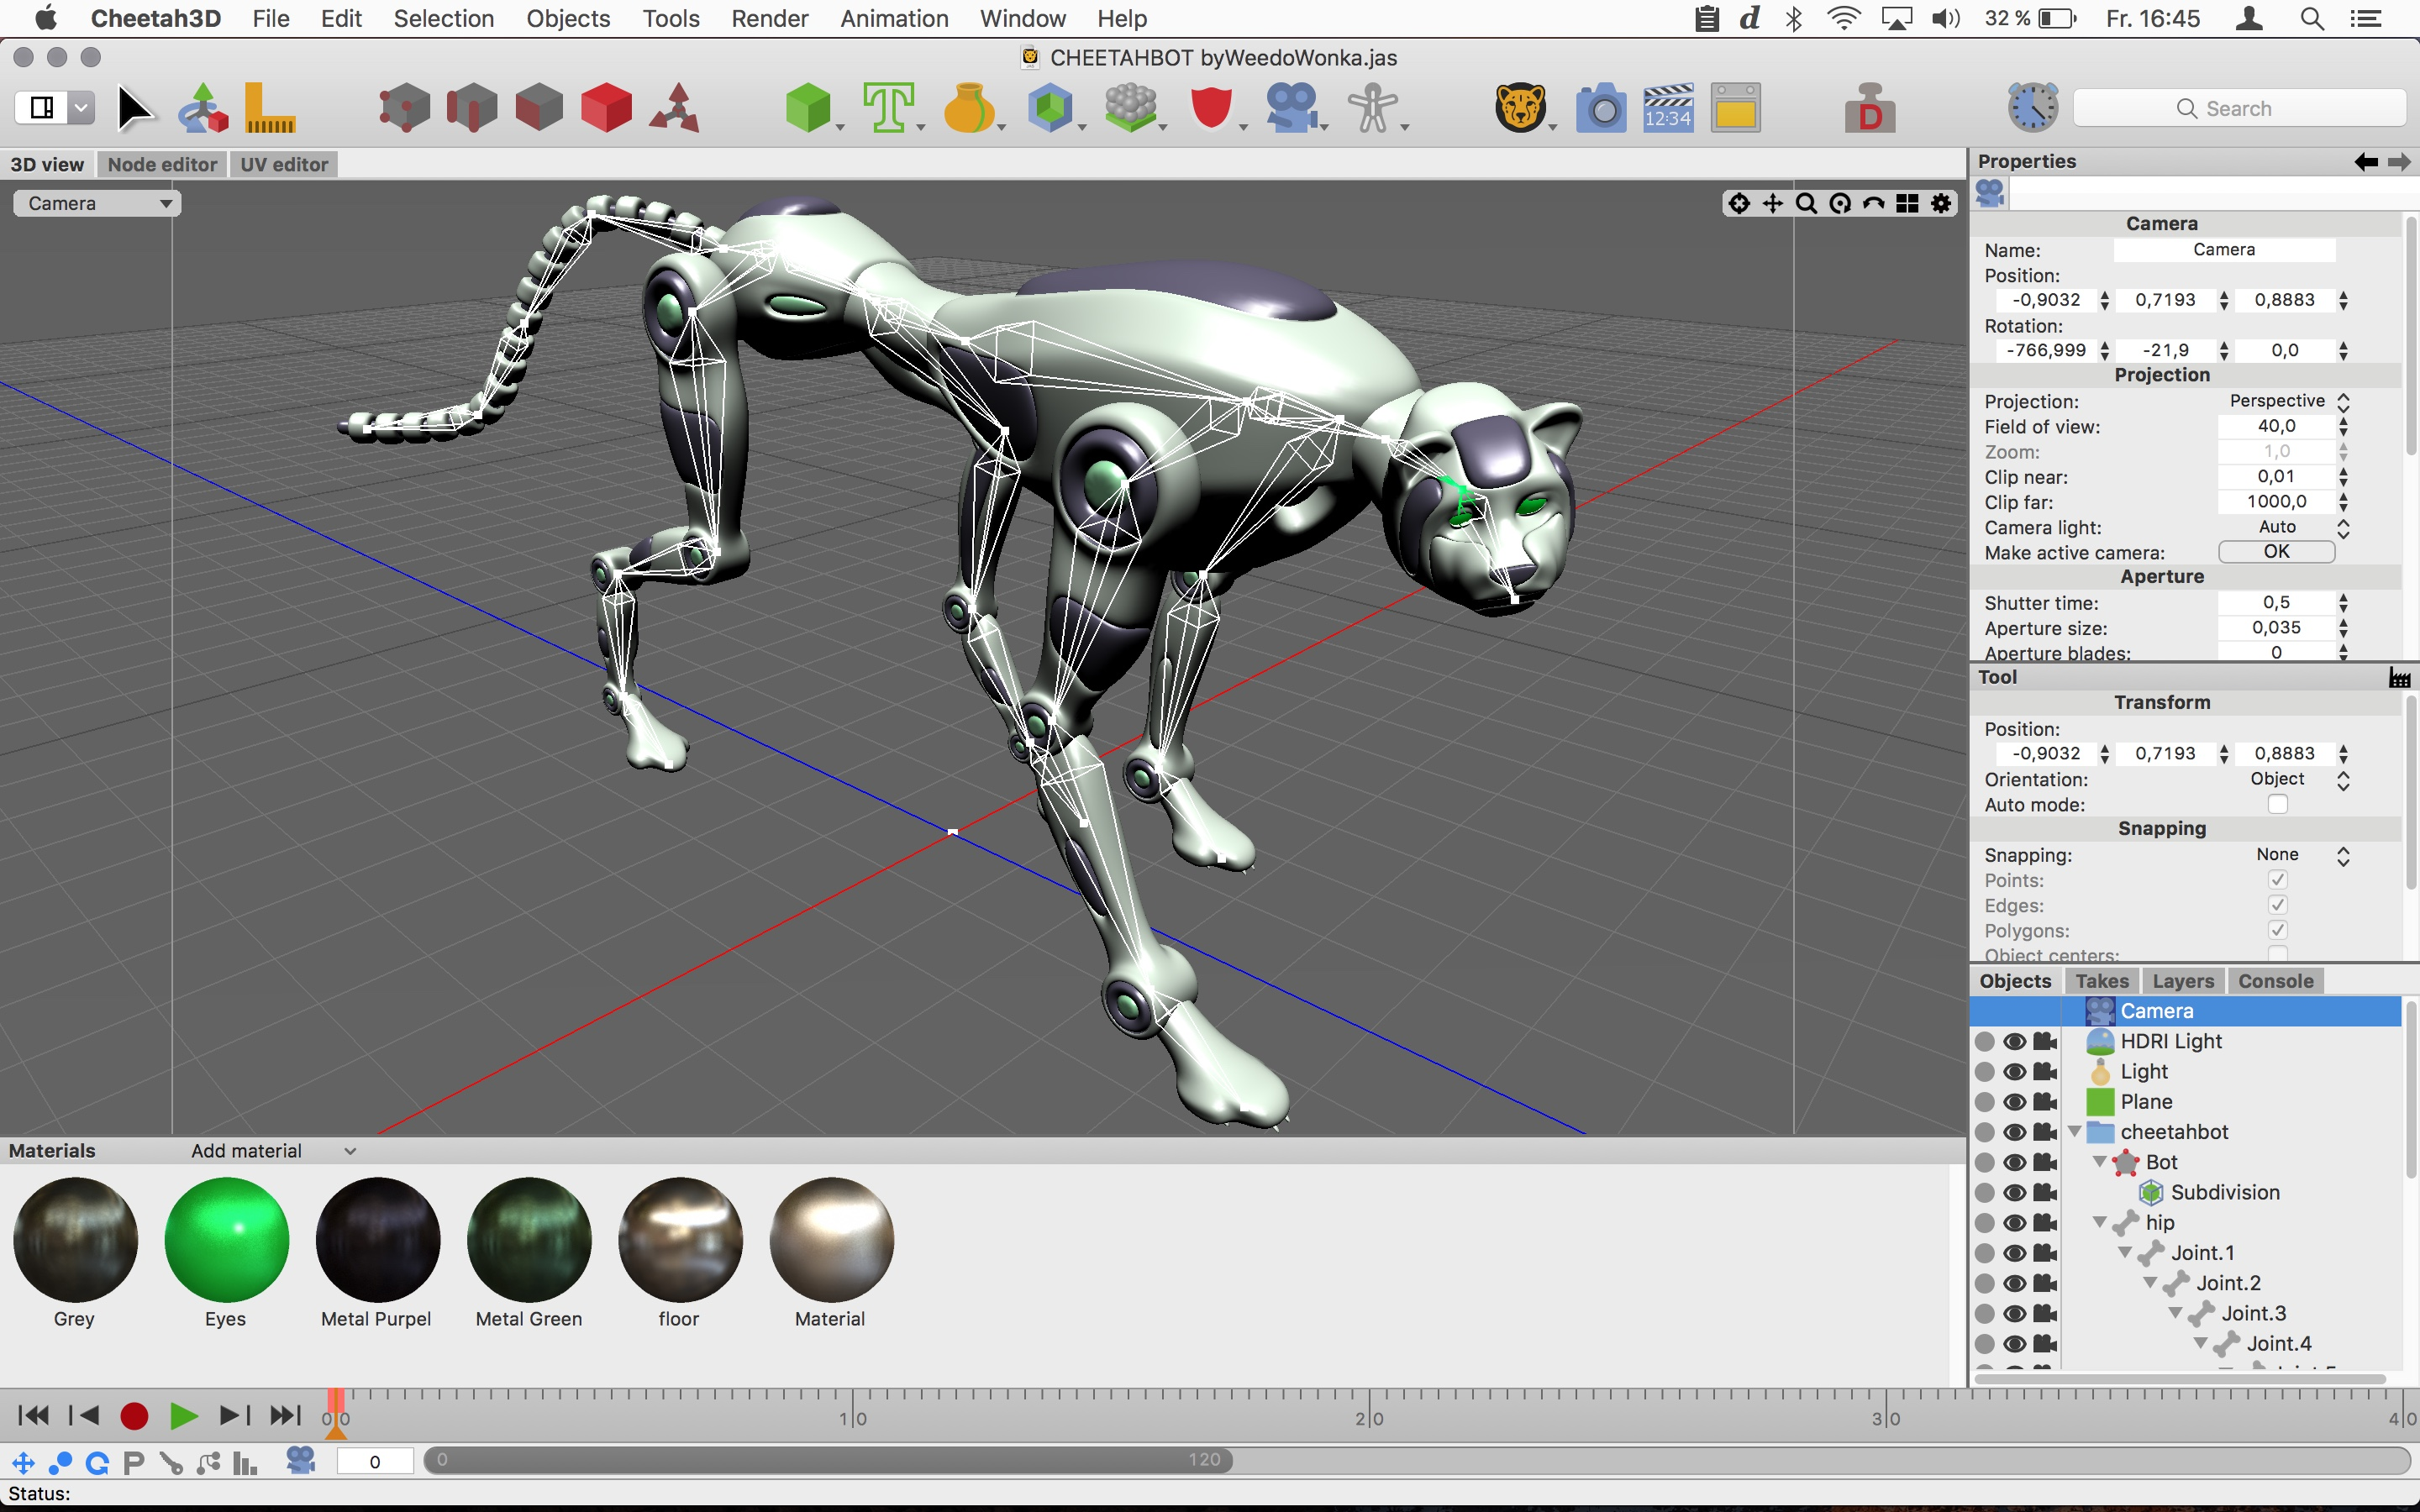 MW3D-Solutions releases Cheetah3D 7.0 - Biggest Upgrade ever Image